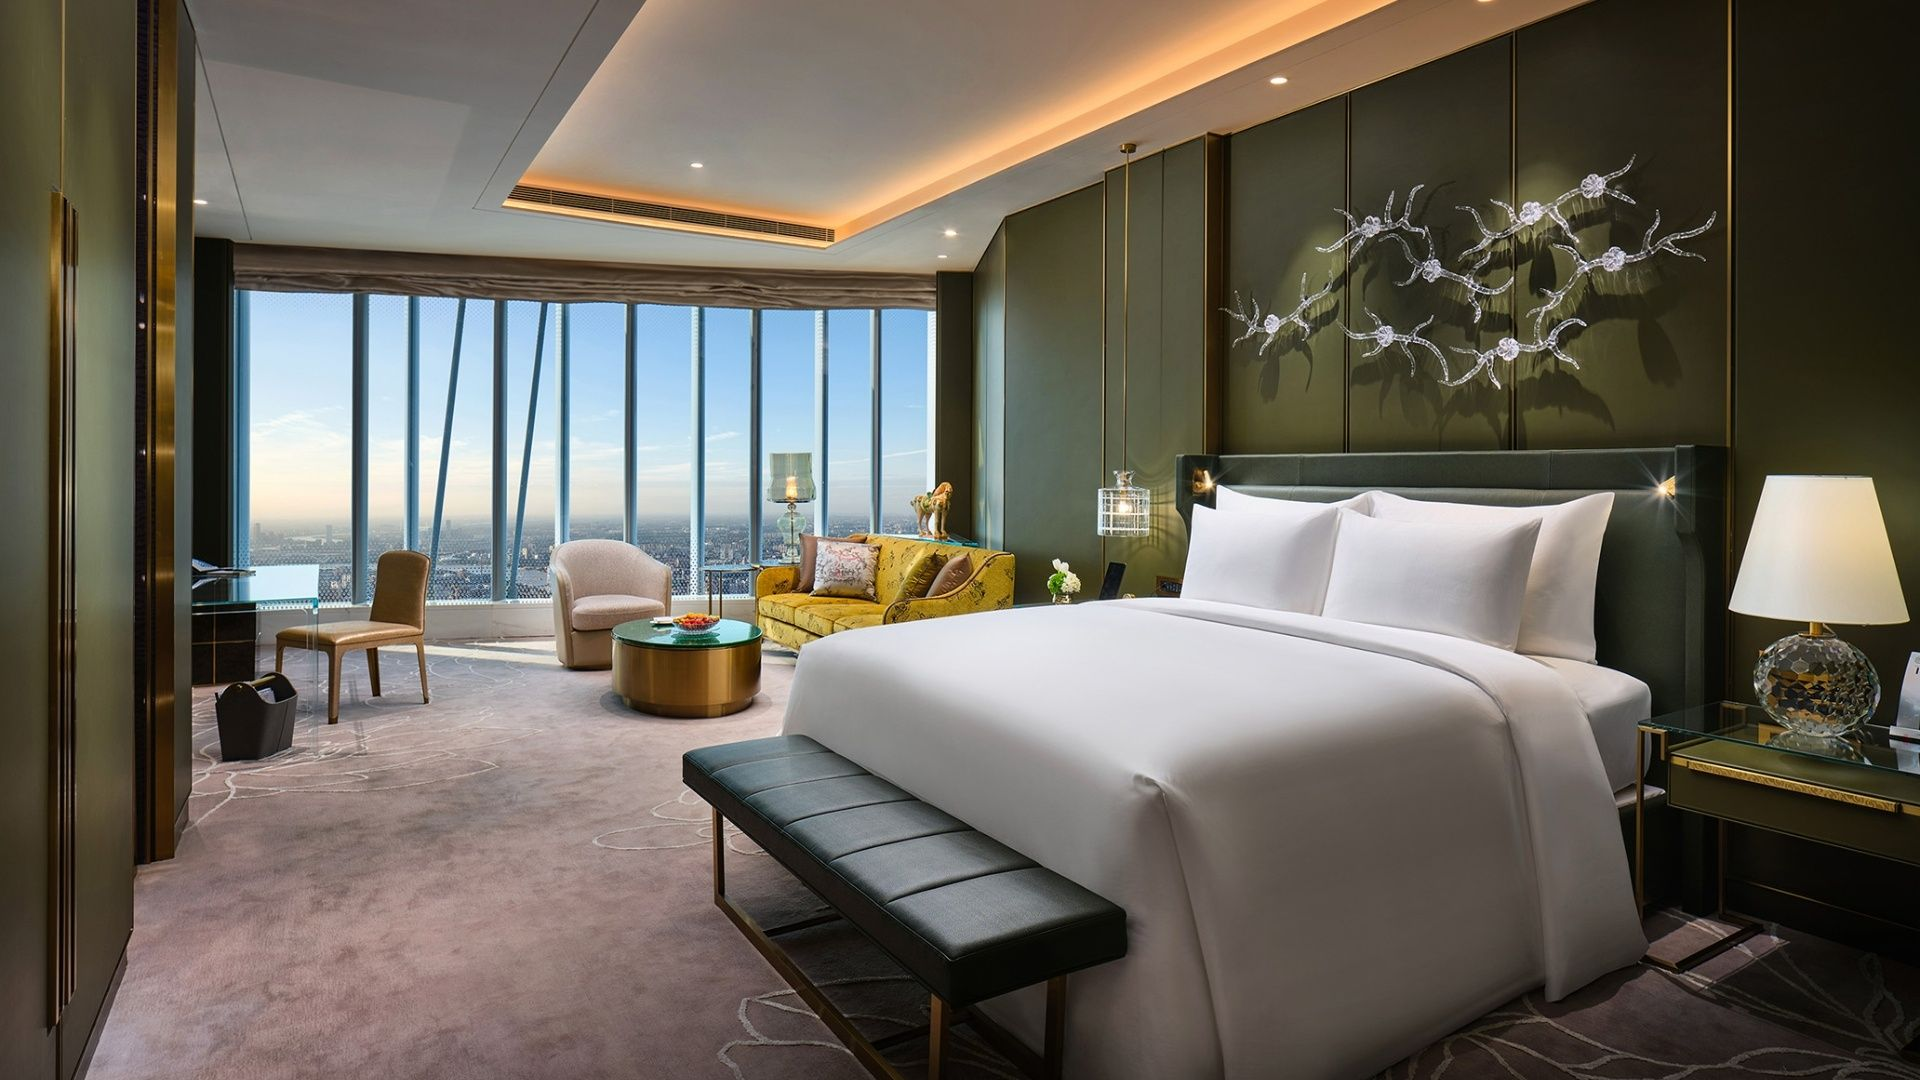 The New Chinese Style stateroom at J Hotel Shanghai Tower features rich leather furniture and dragon patterned sofas.